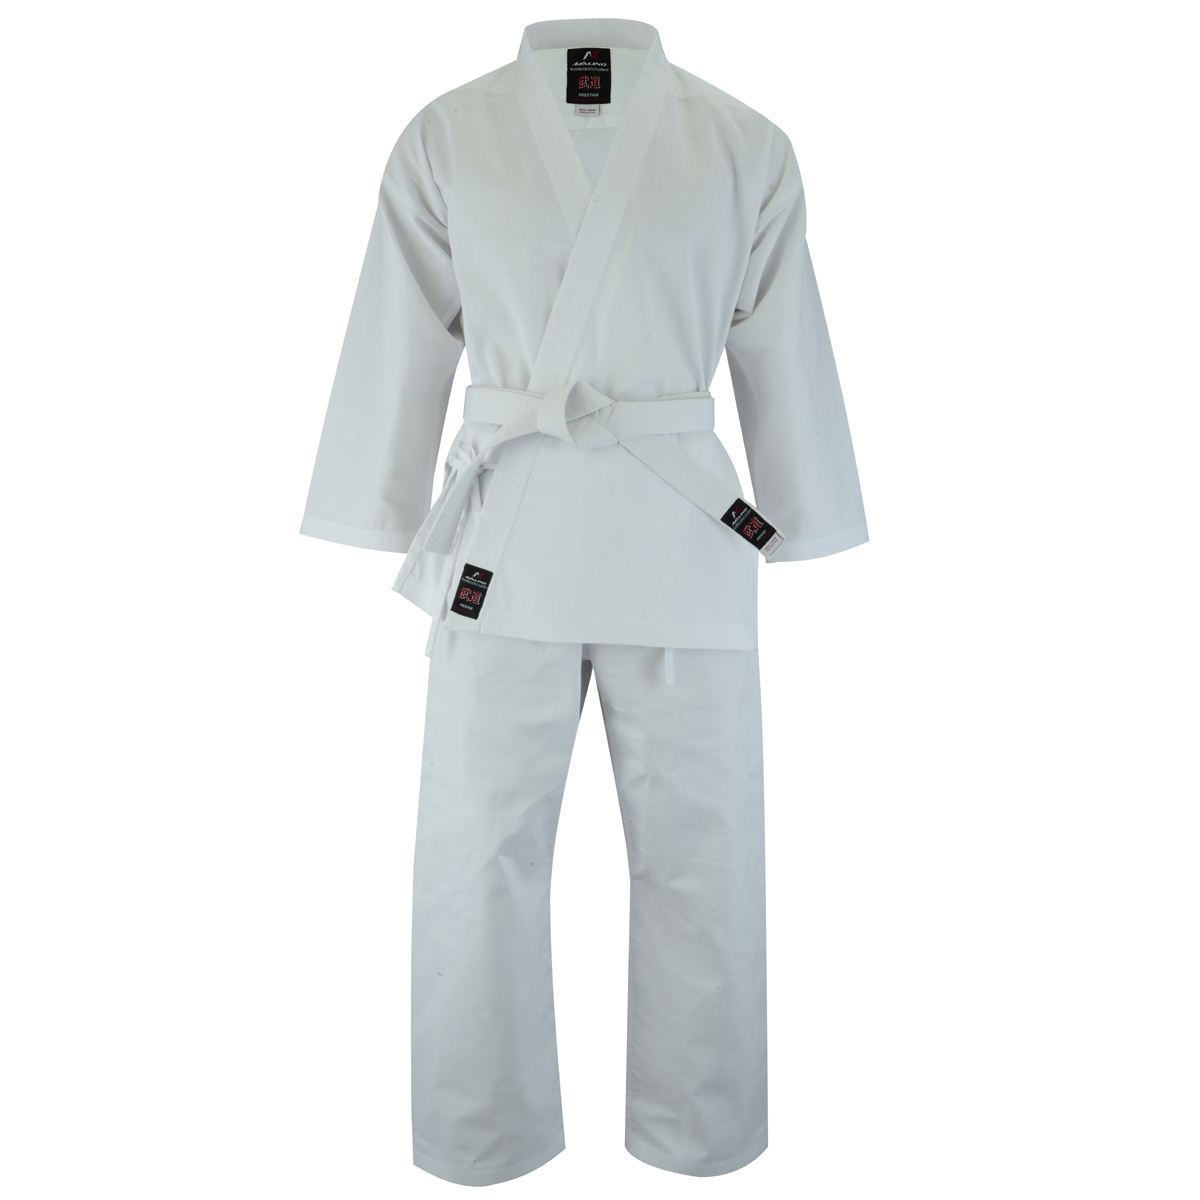 Malino Kids Student Karate Suit White - 7oz